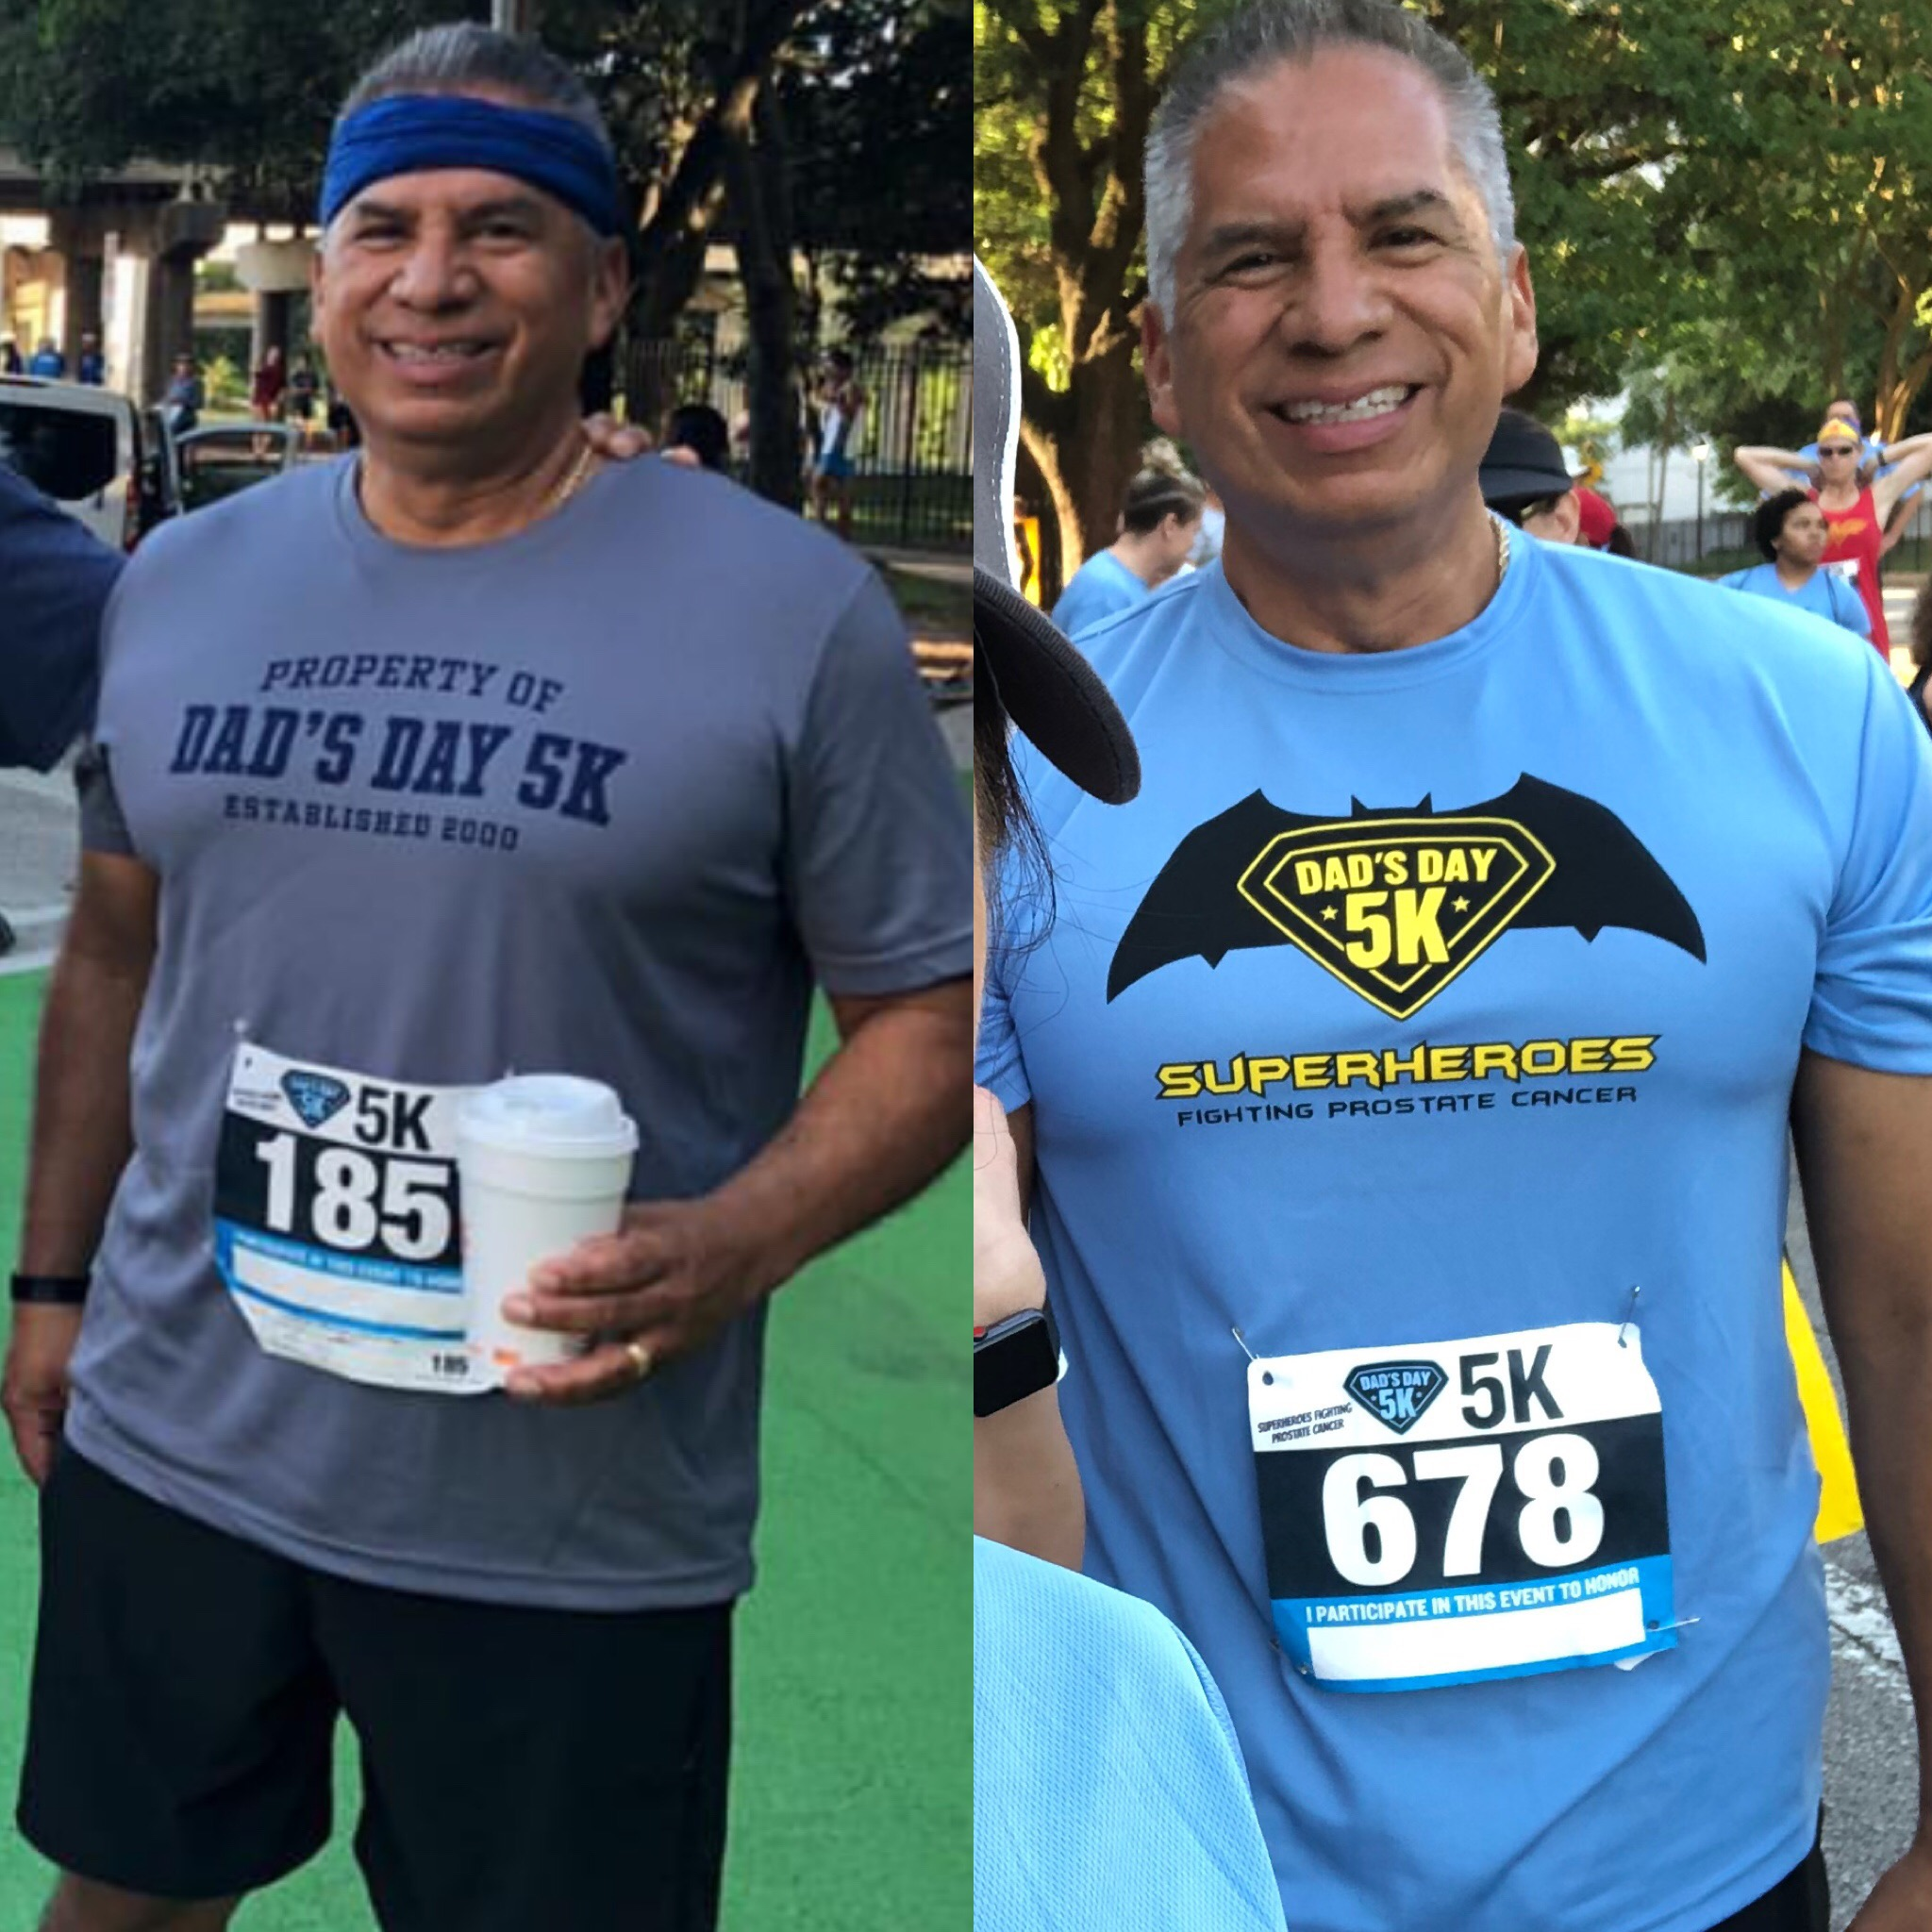 Left: Fathers Day 5k 2018. Right: Fathers Day 5k 2019